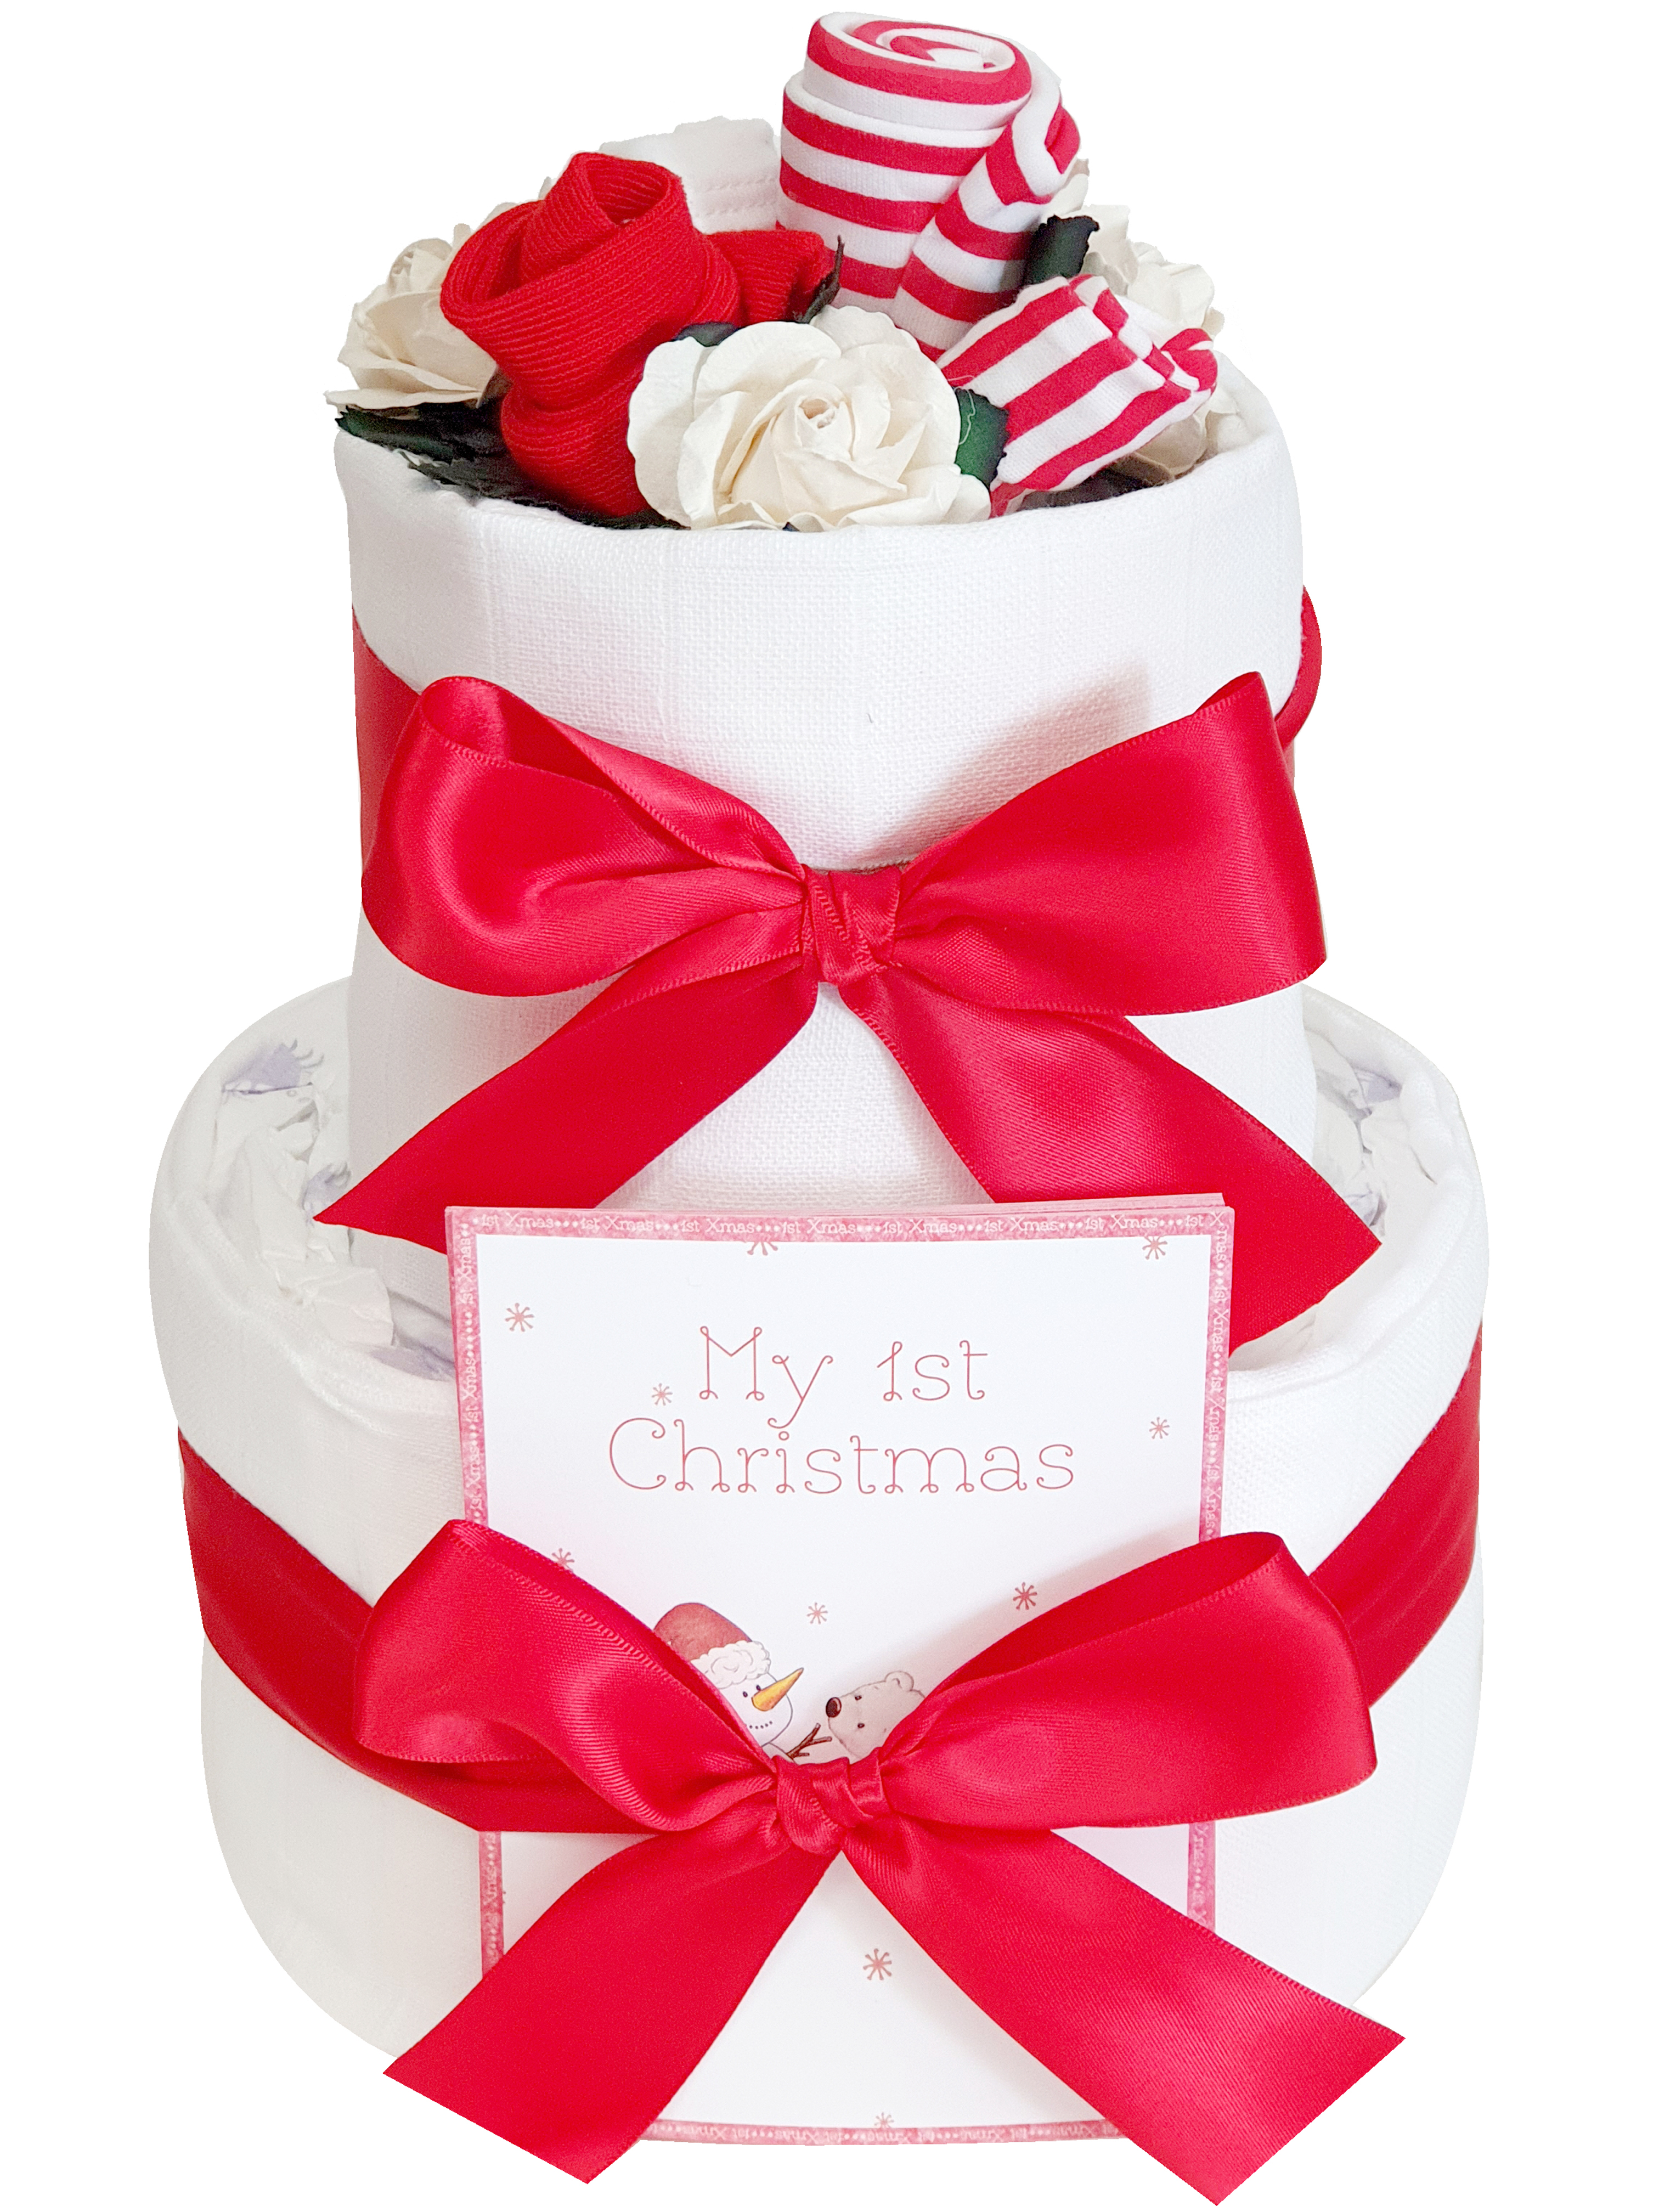 Babys 1st Christmas Gift 2 Tier Nappy Cake